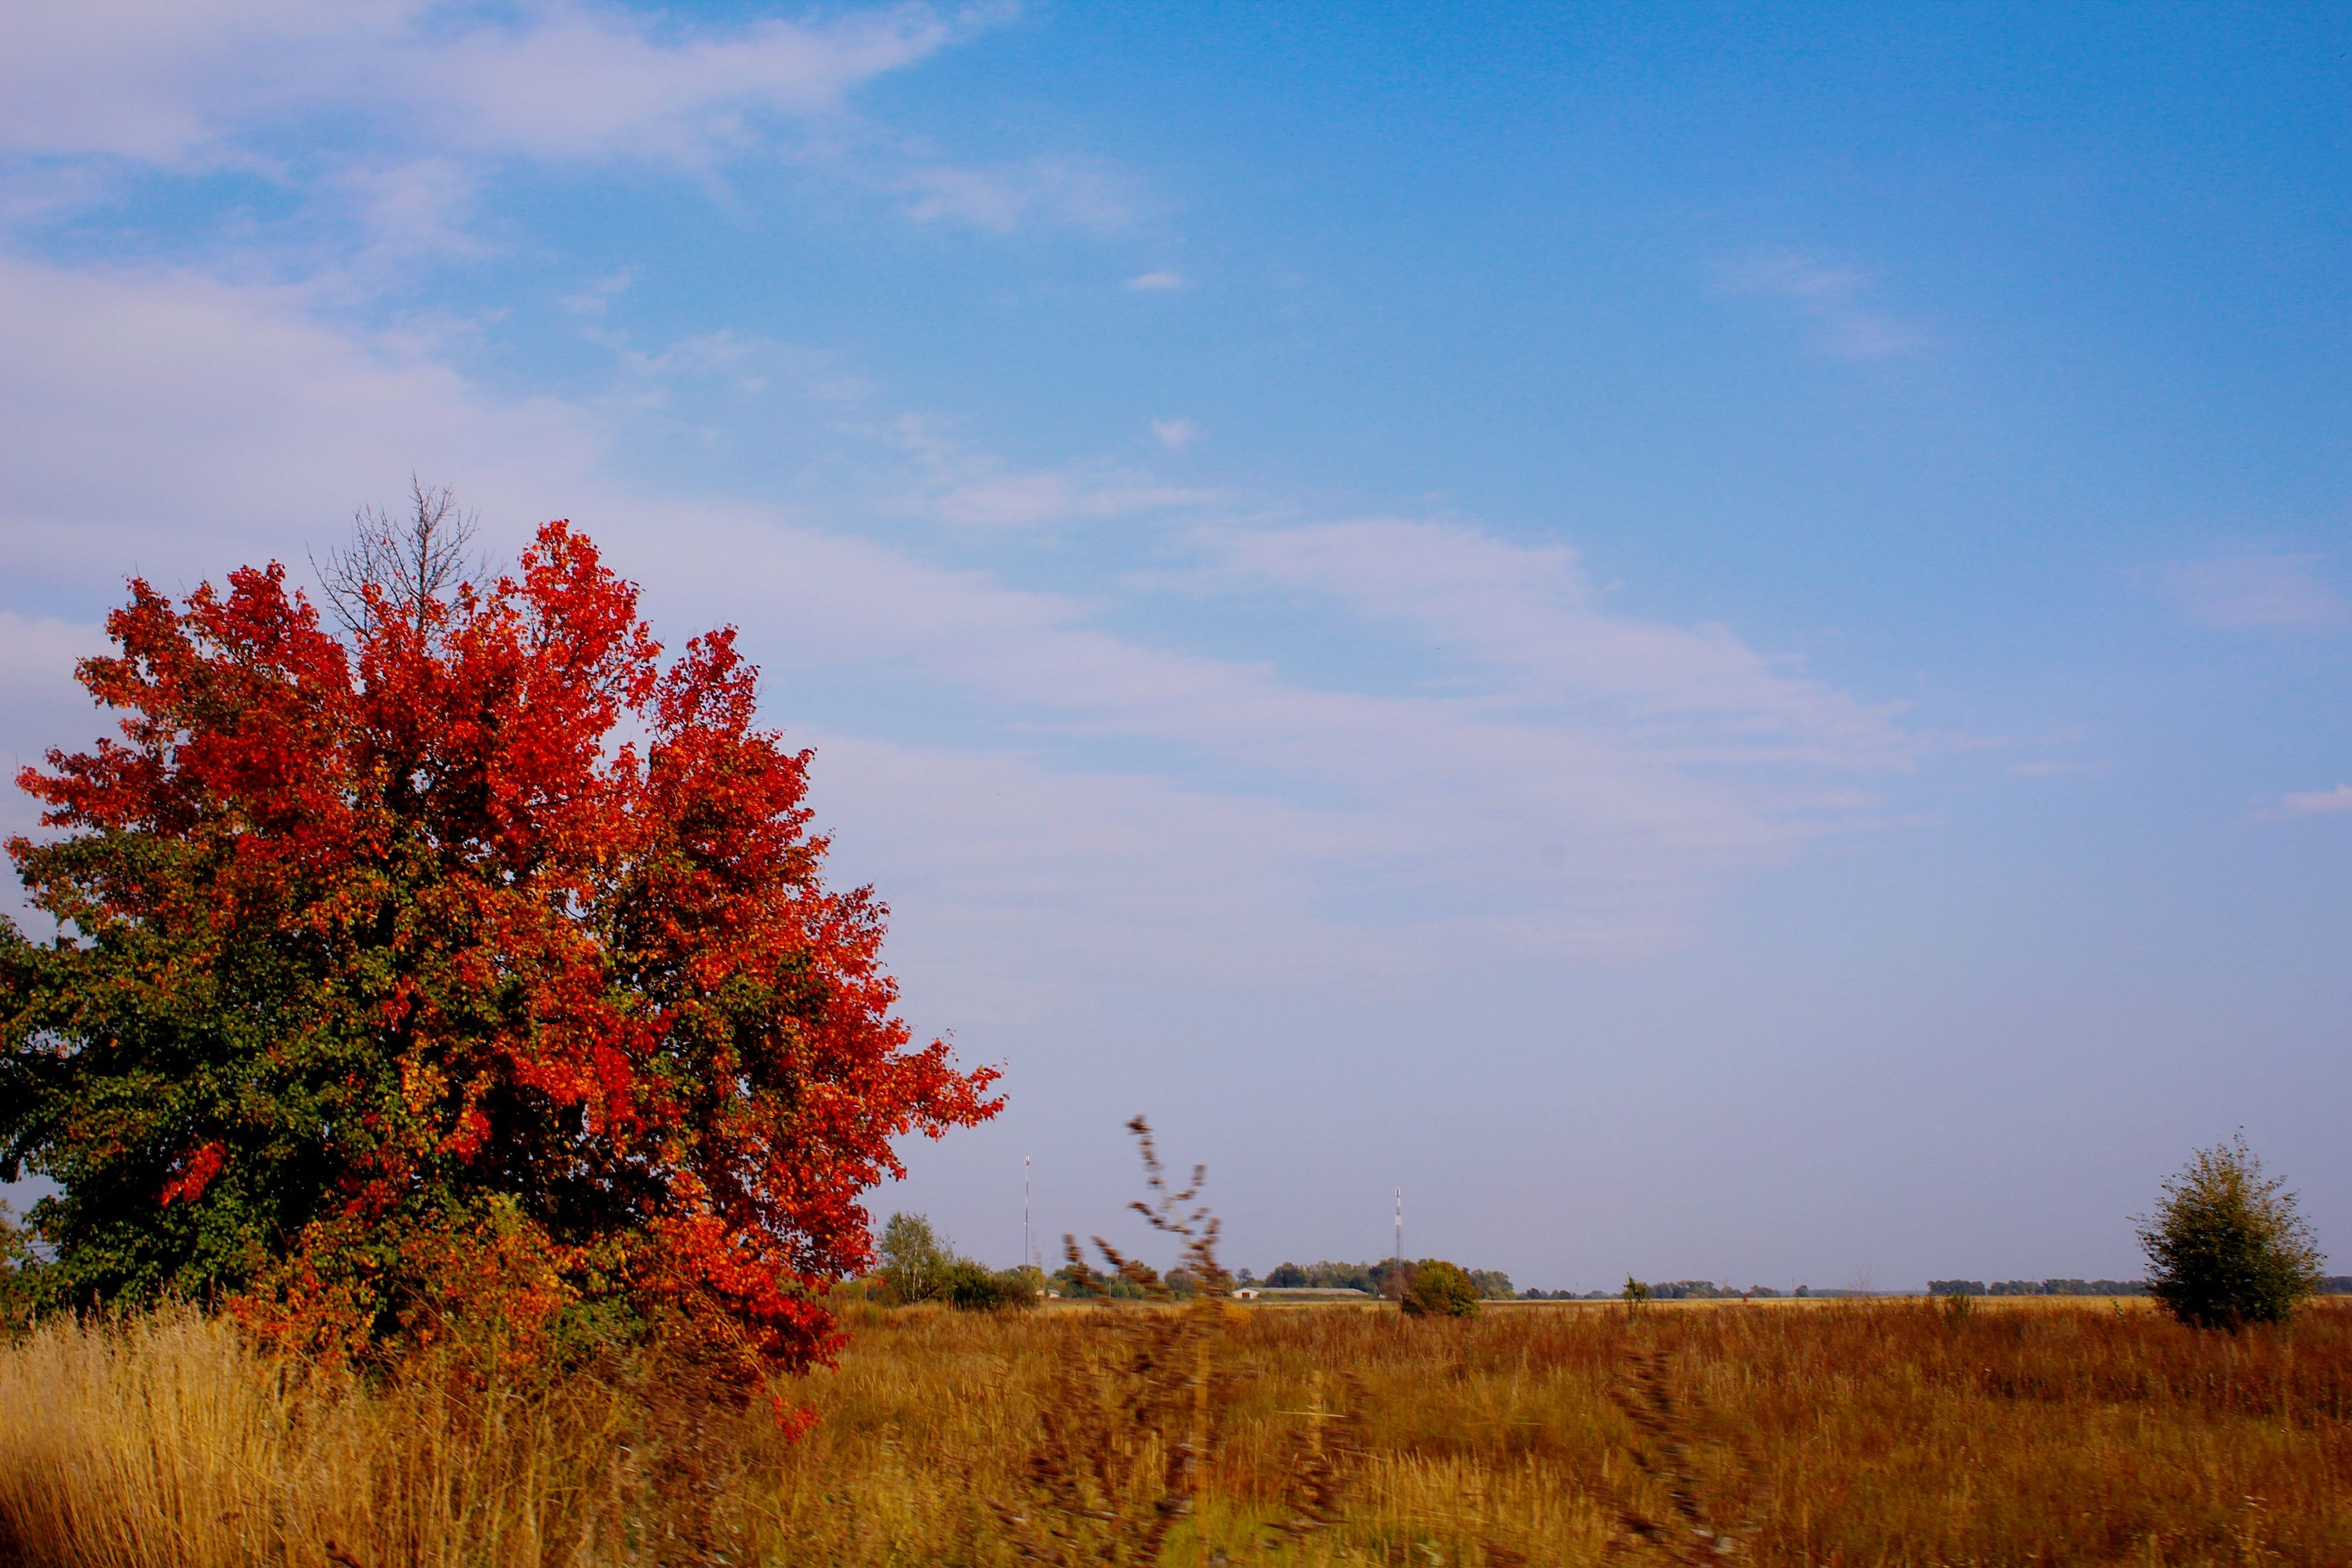 sky, tree, tranquility, tranquil scene, red, beauty in nature, field, growth, landscape, nature, scenics, grass, cloud - sky, cloud, plant, blue, non-urban scene, idyllic, outdoors, day